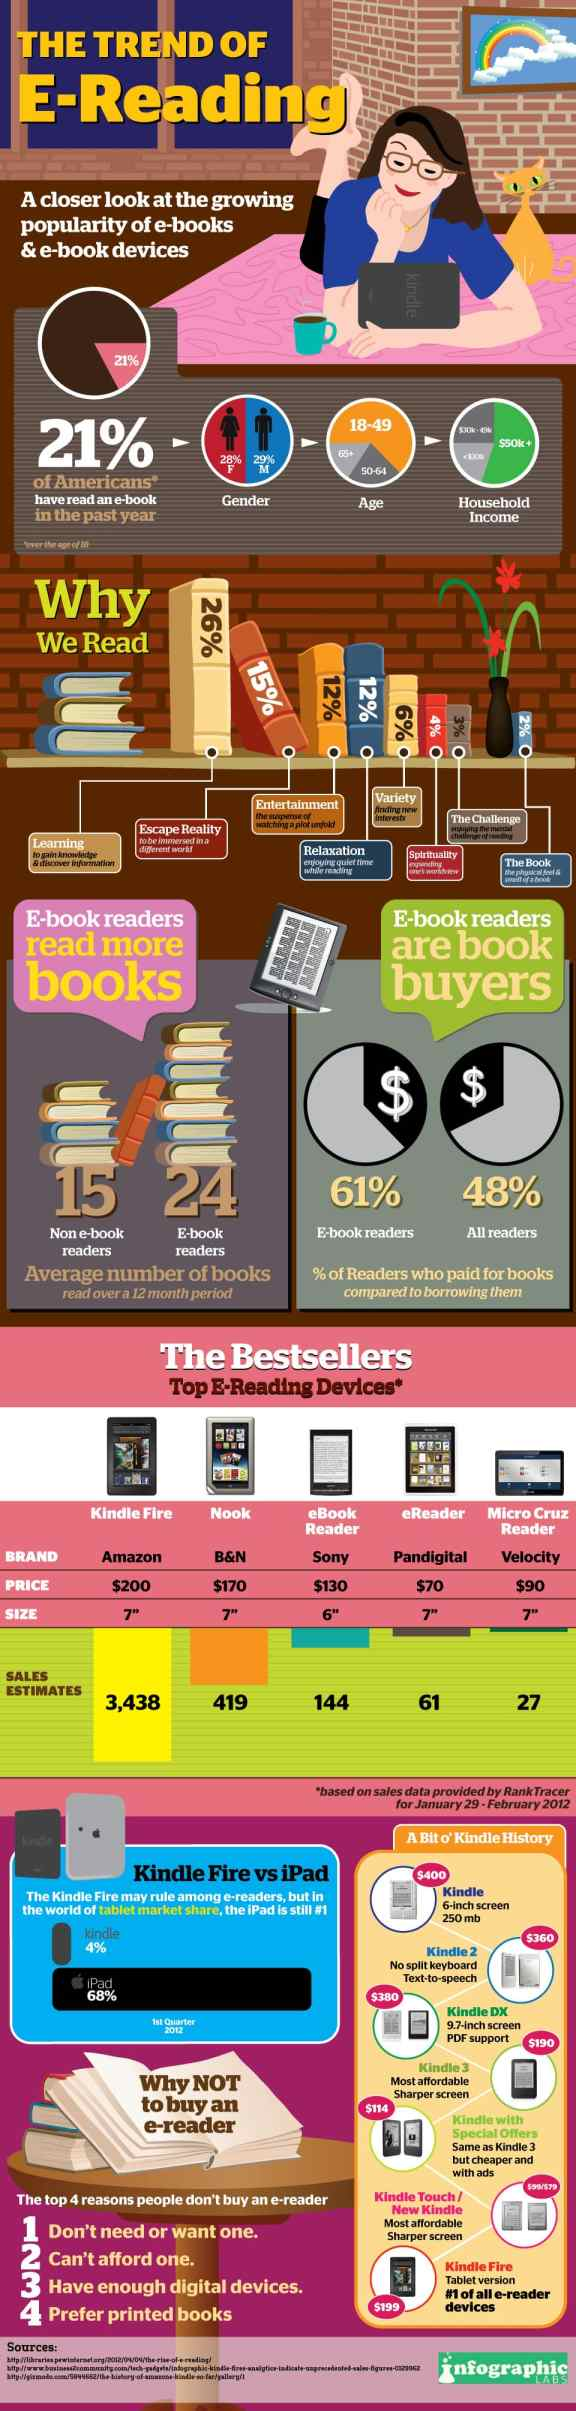 The Trend of E-Reading (Infographic) Infographic